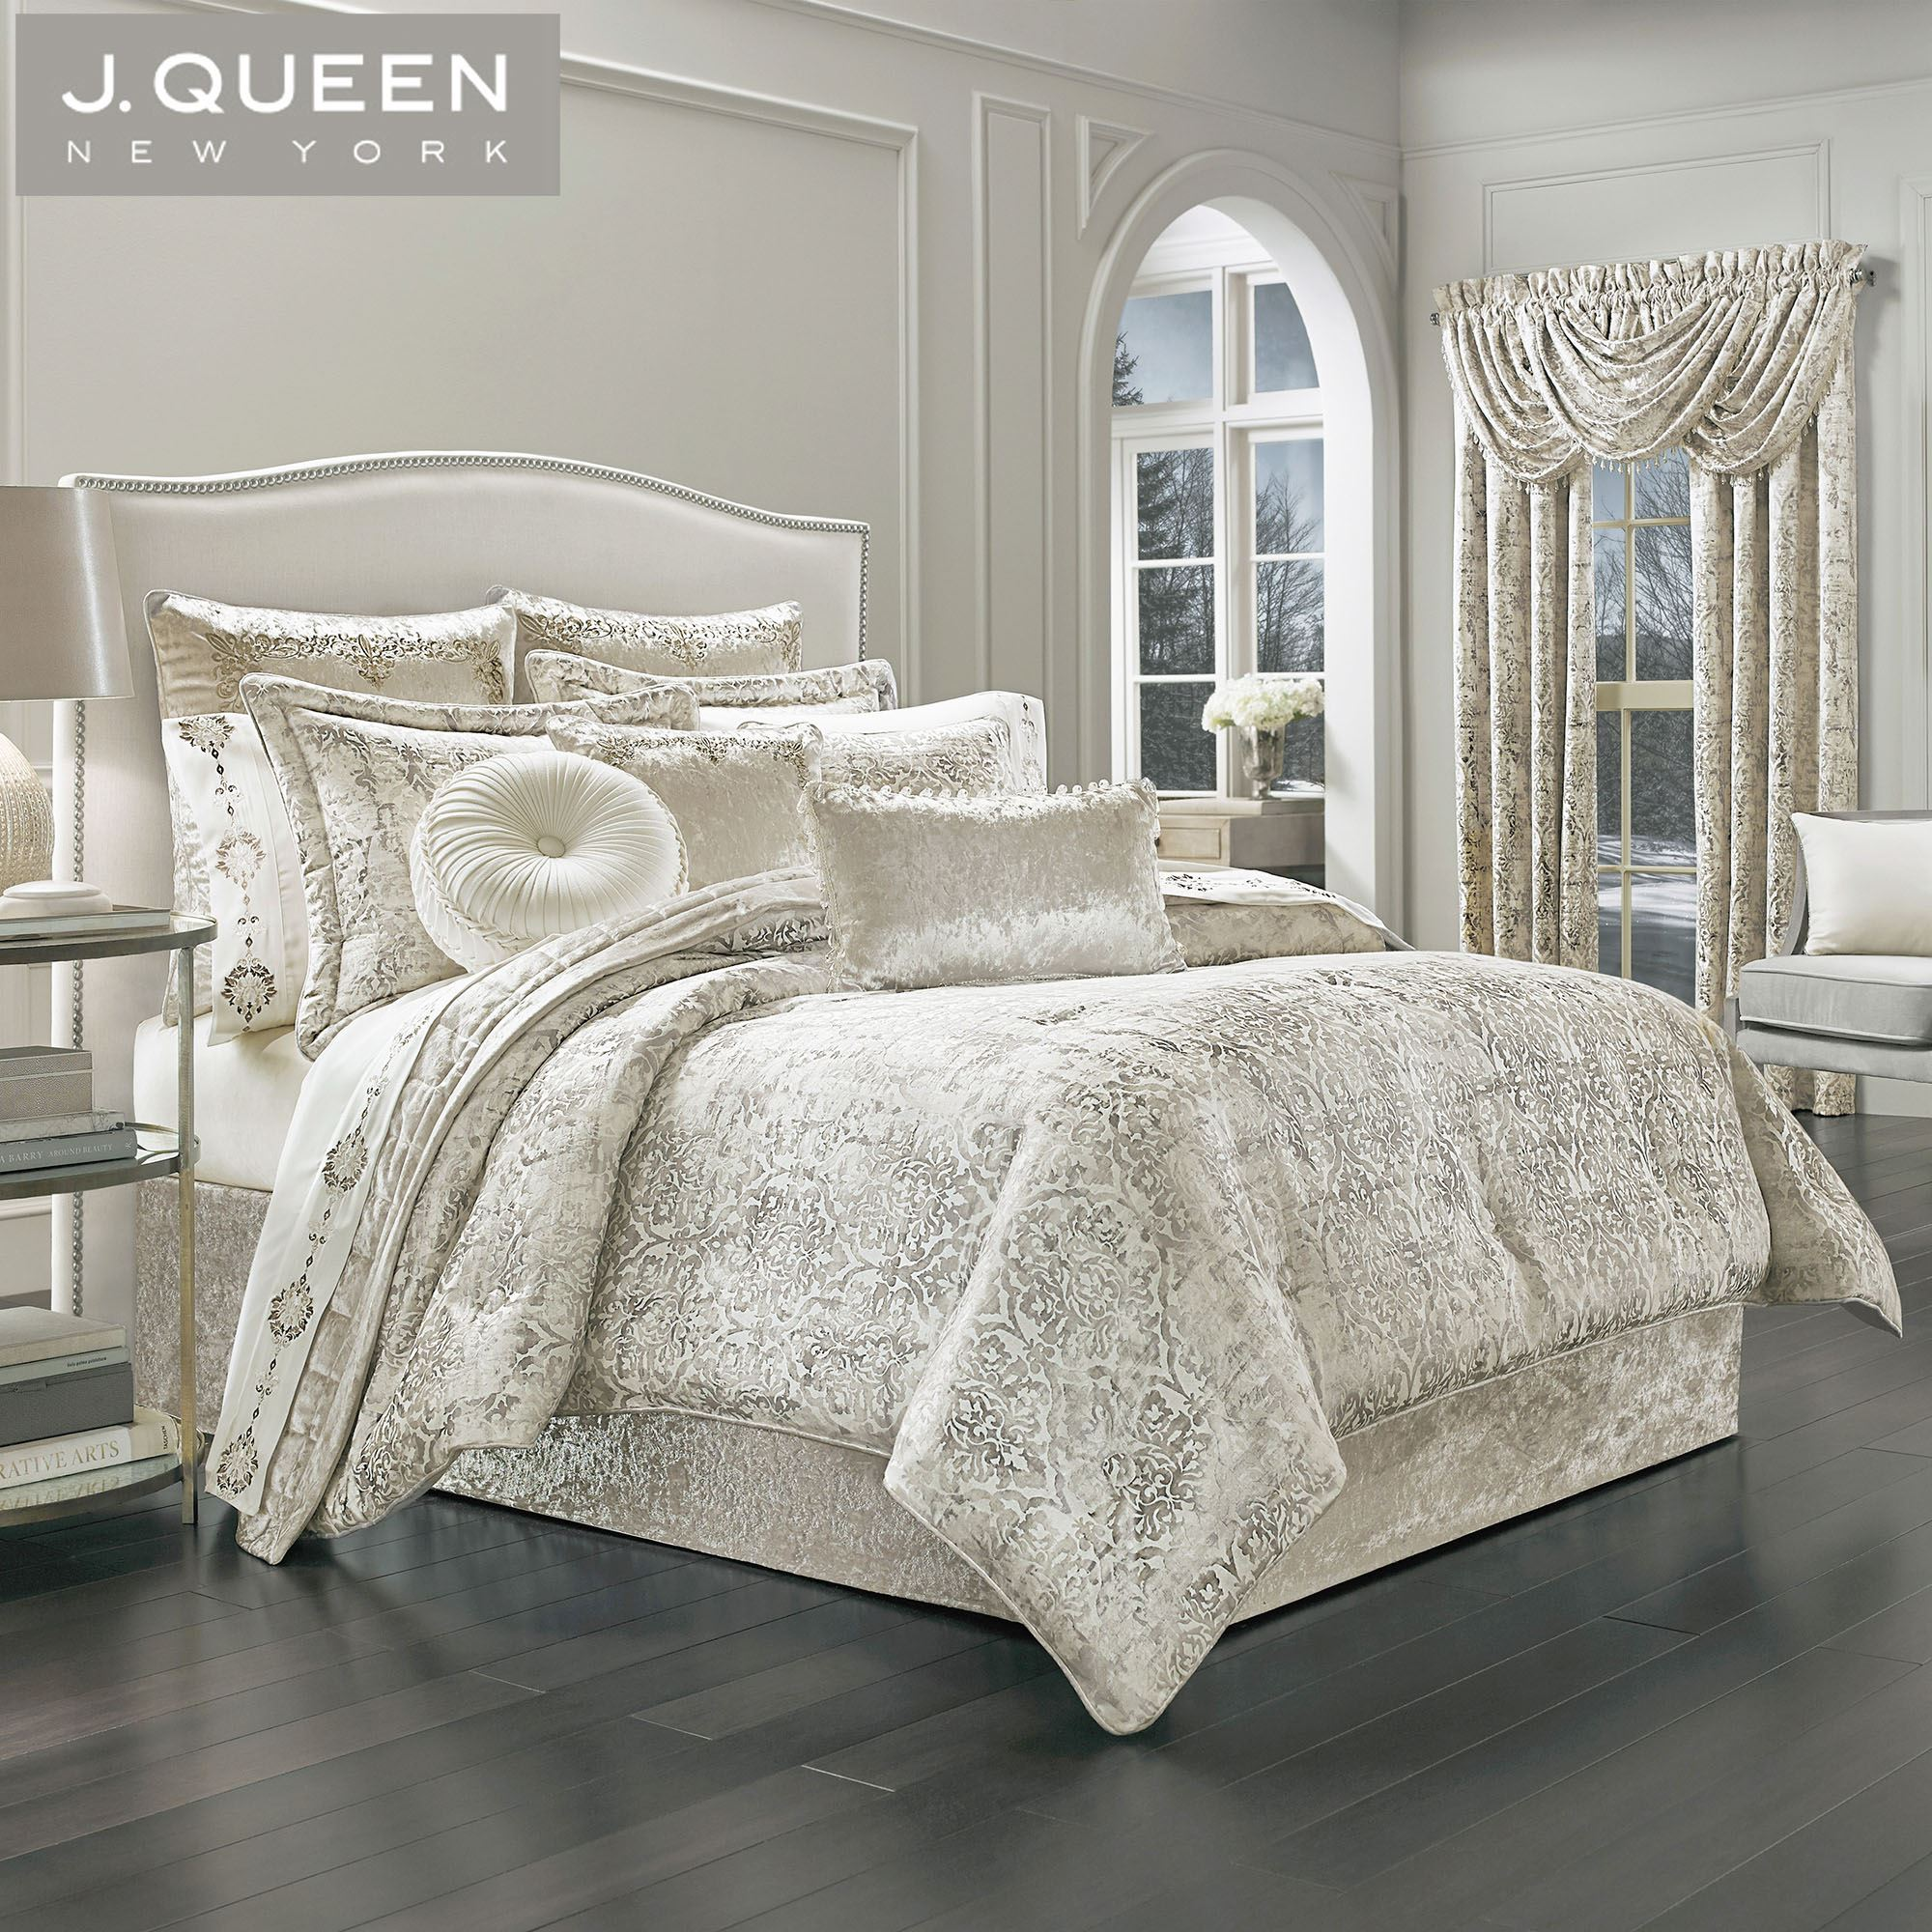 dream damask comforter bedding by j queen new york